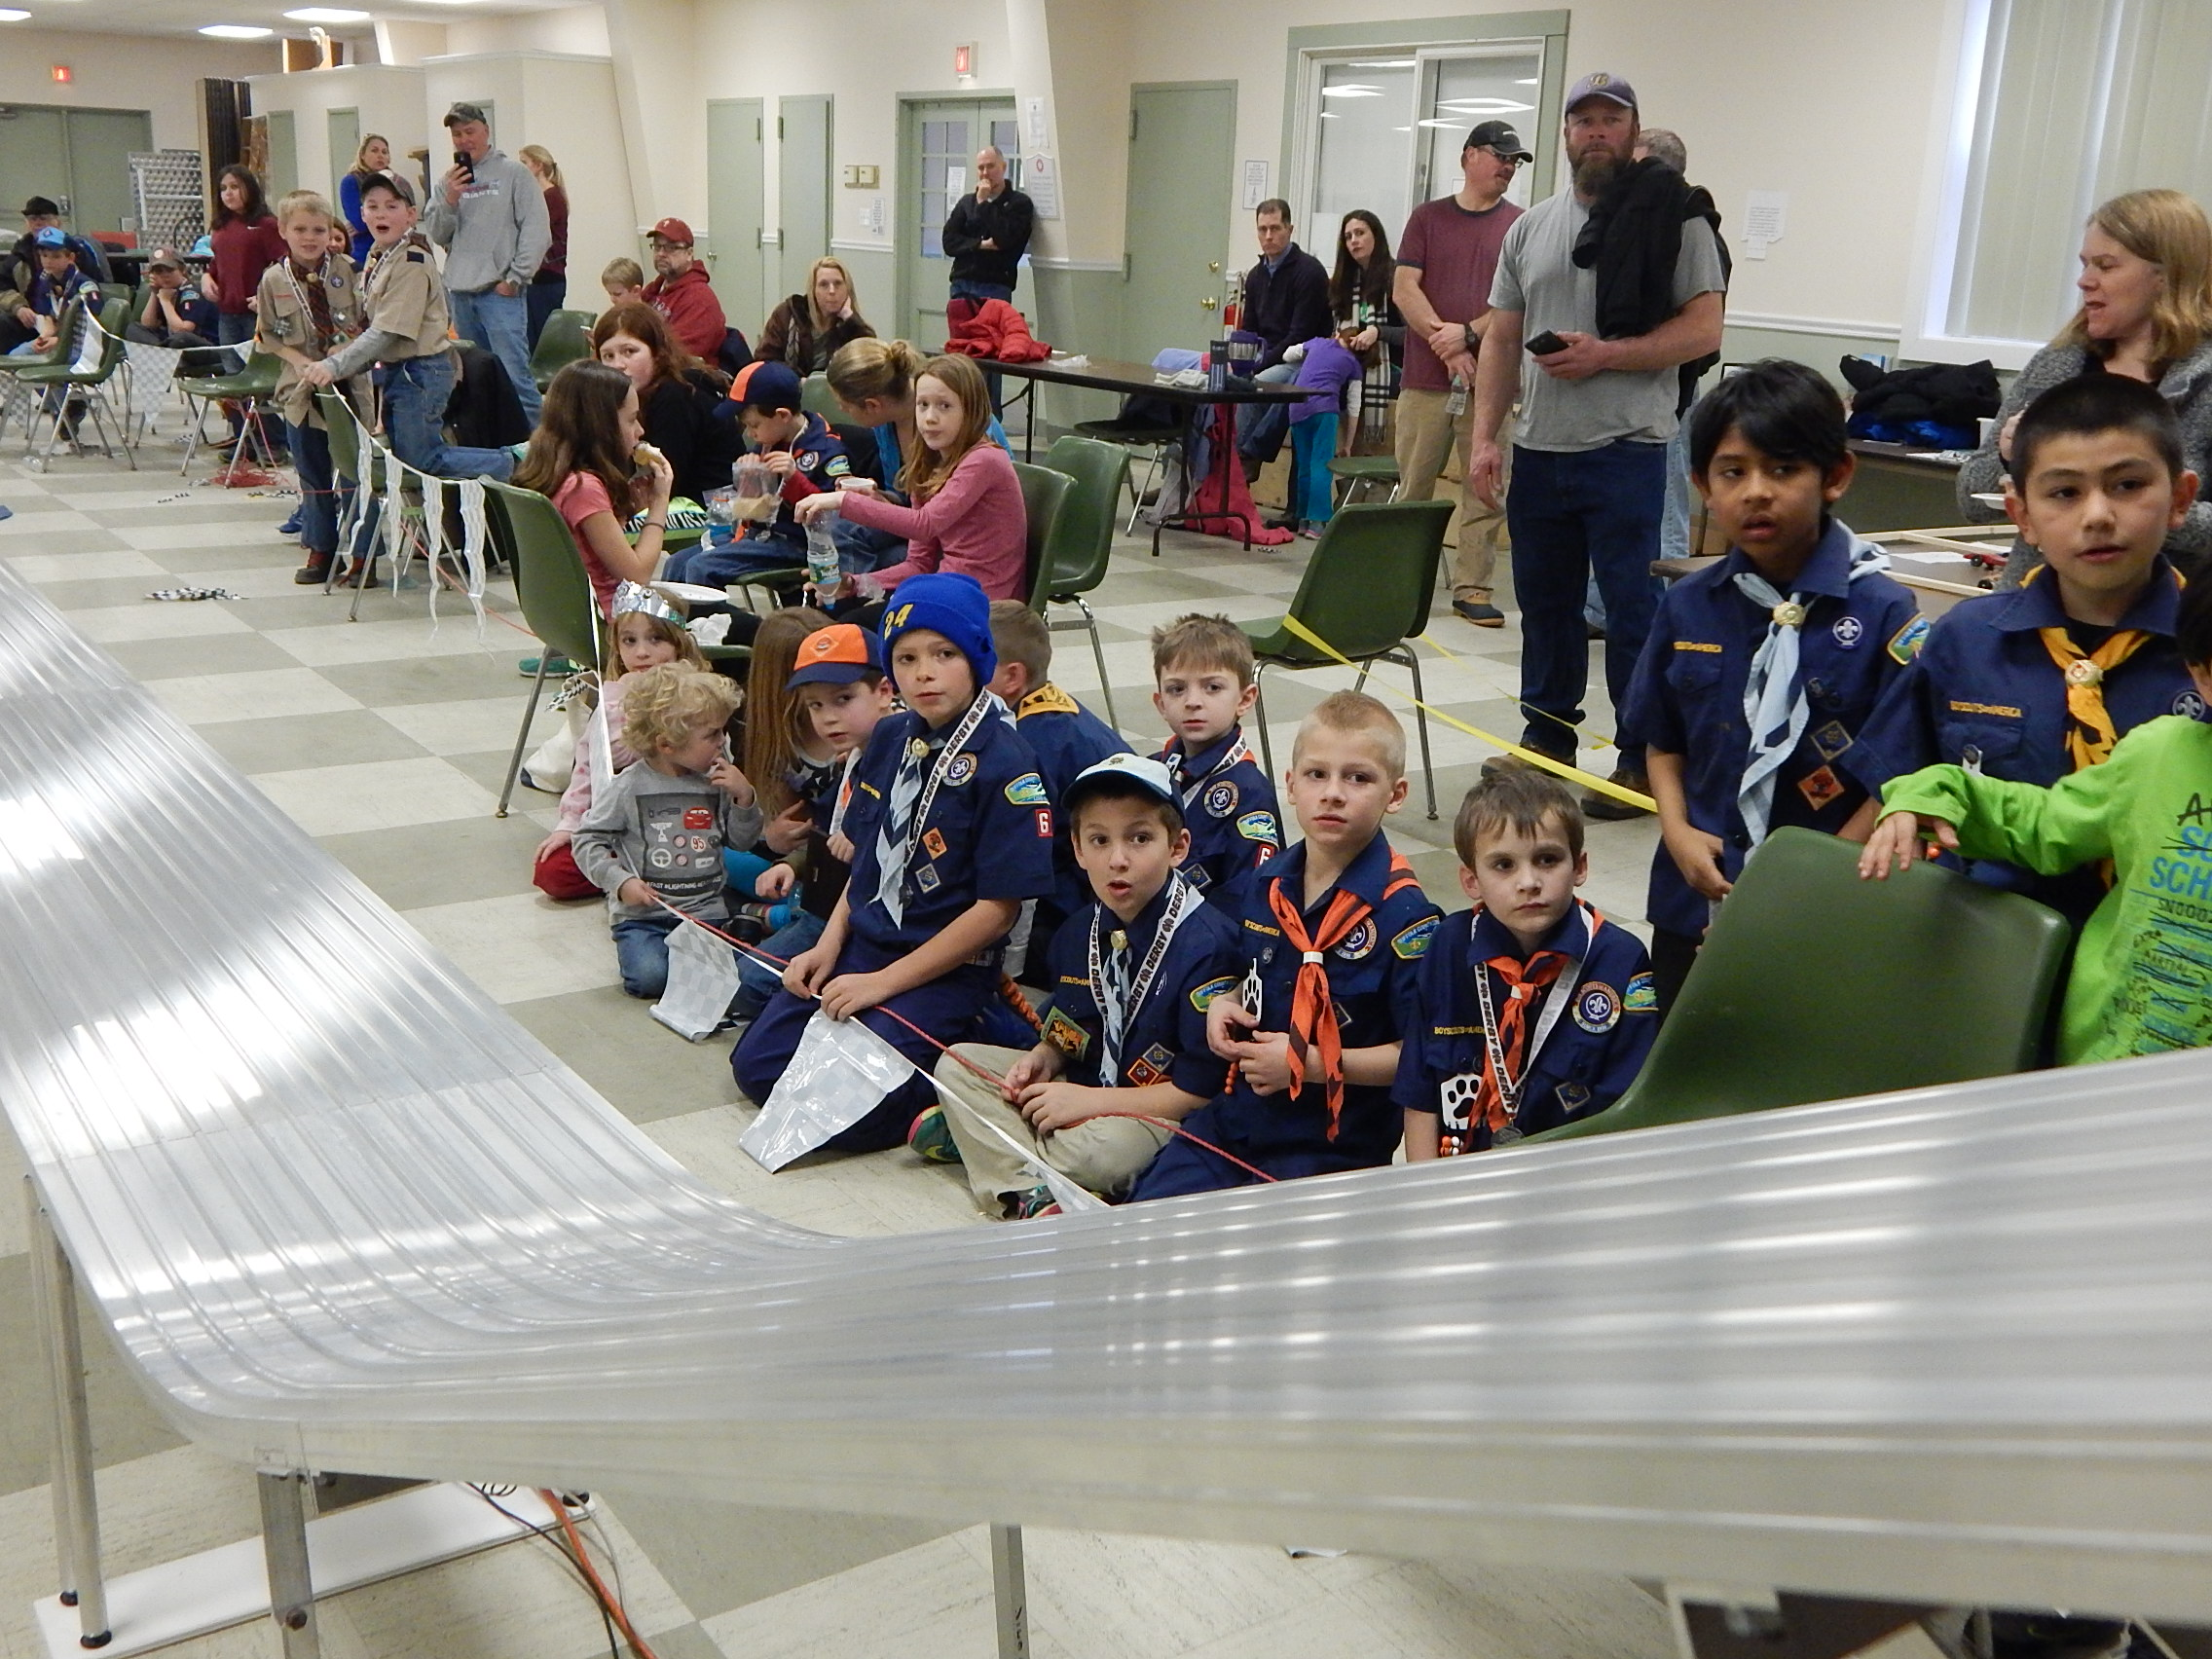 Courtesy Photos Of The Cub ScoutsPack 6 Pinewood Derby Night By Derek Bossen